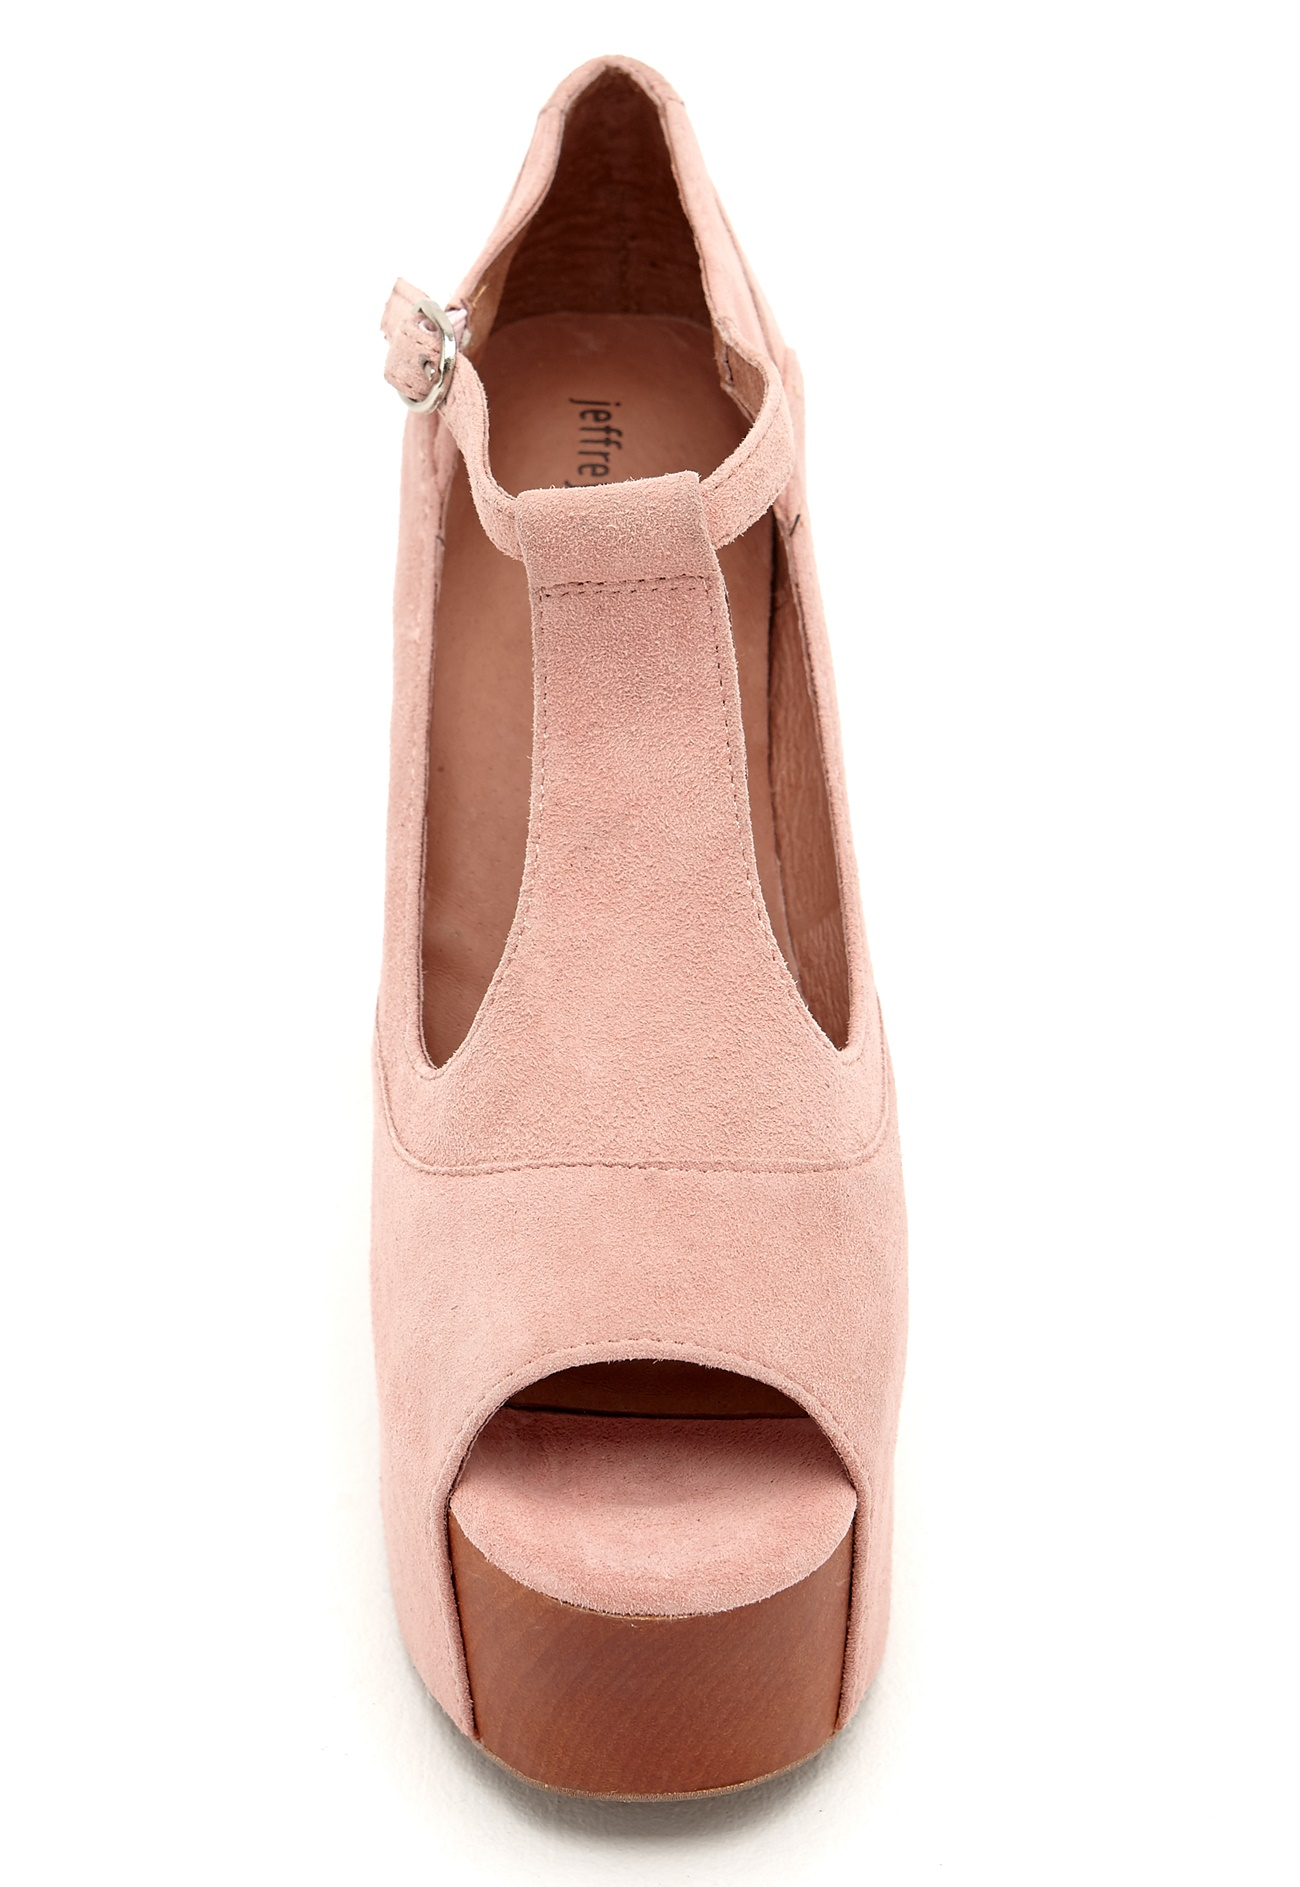 campbell hindu single women Free shipping on jeffrey campbell shoes for women at nordstromcom totally free shipping & returns.